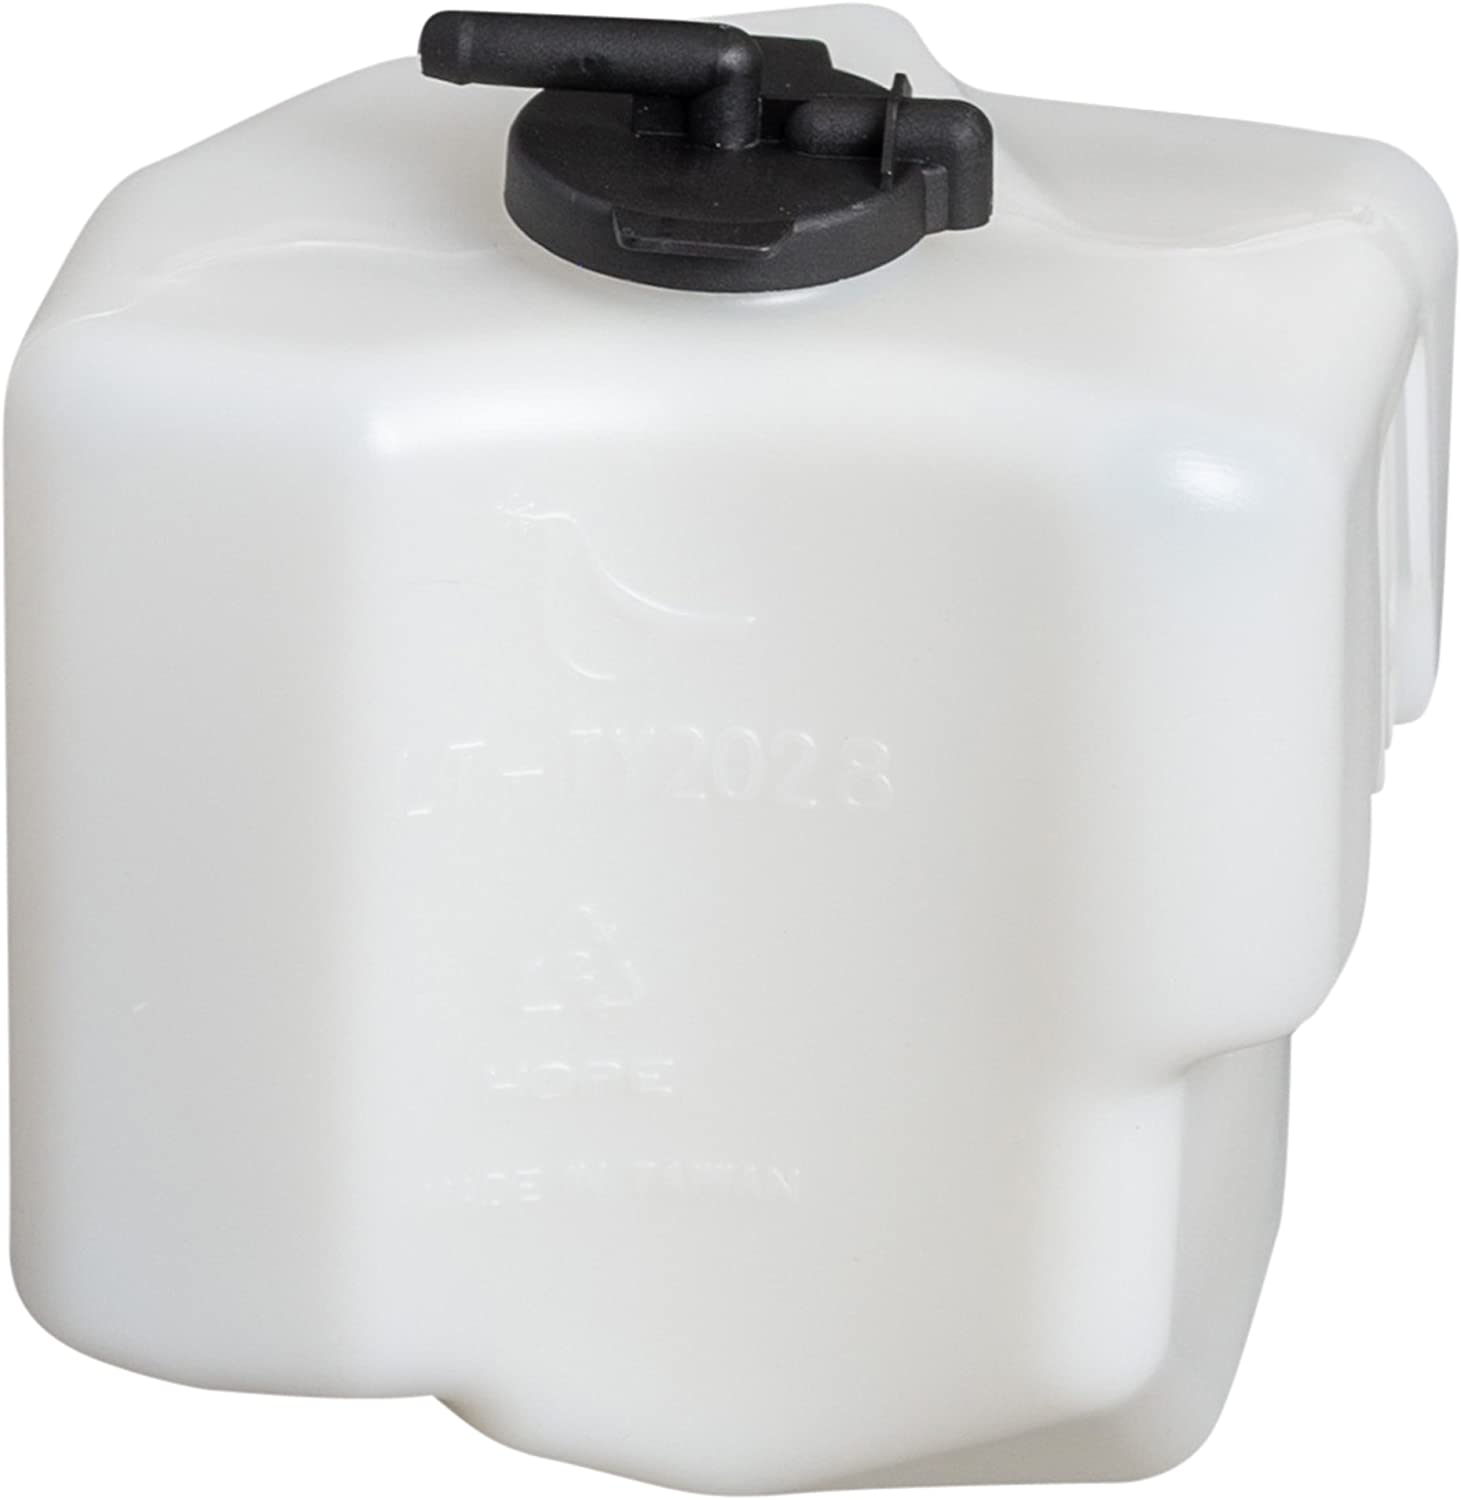 NEW COOLANT RESERVOIR TANK FITS 2002-2004 TOYOTA CAMRY TO3014131